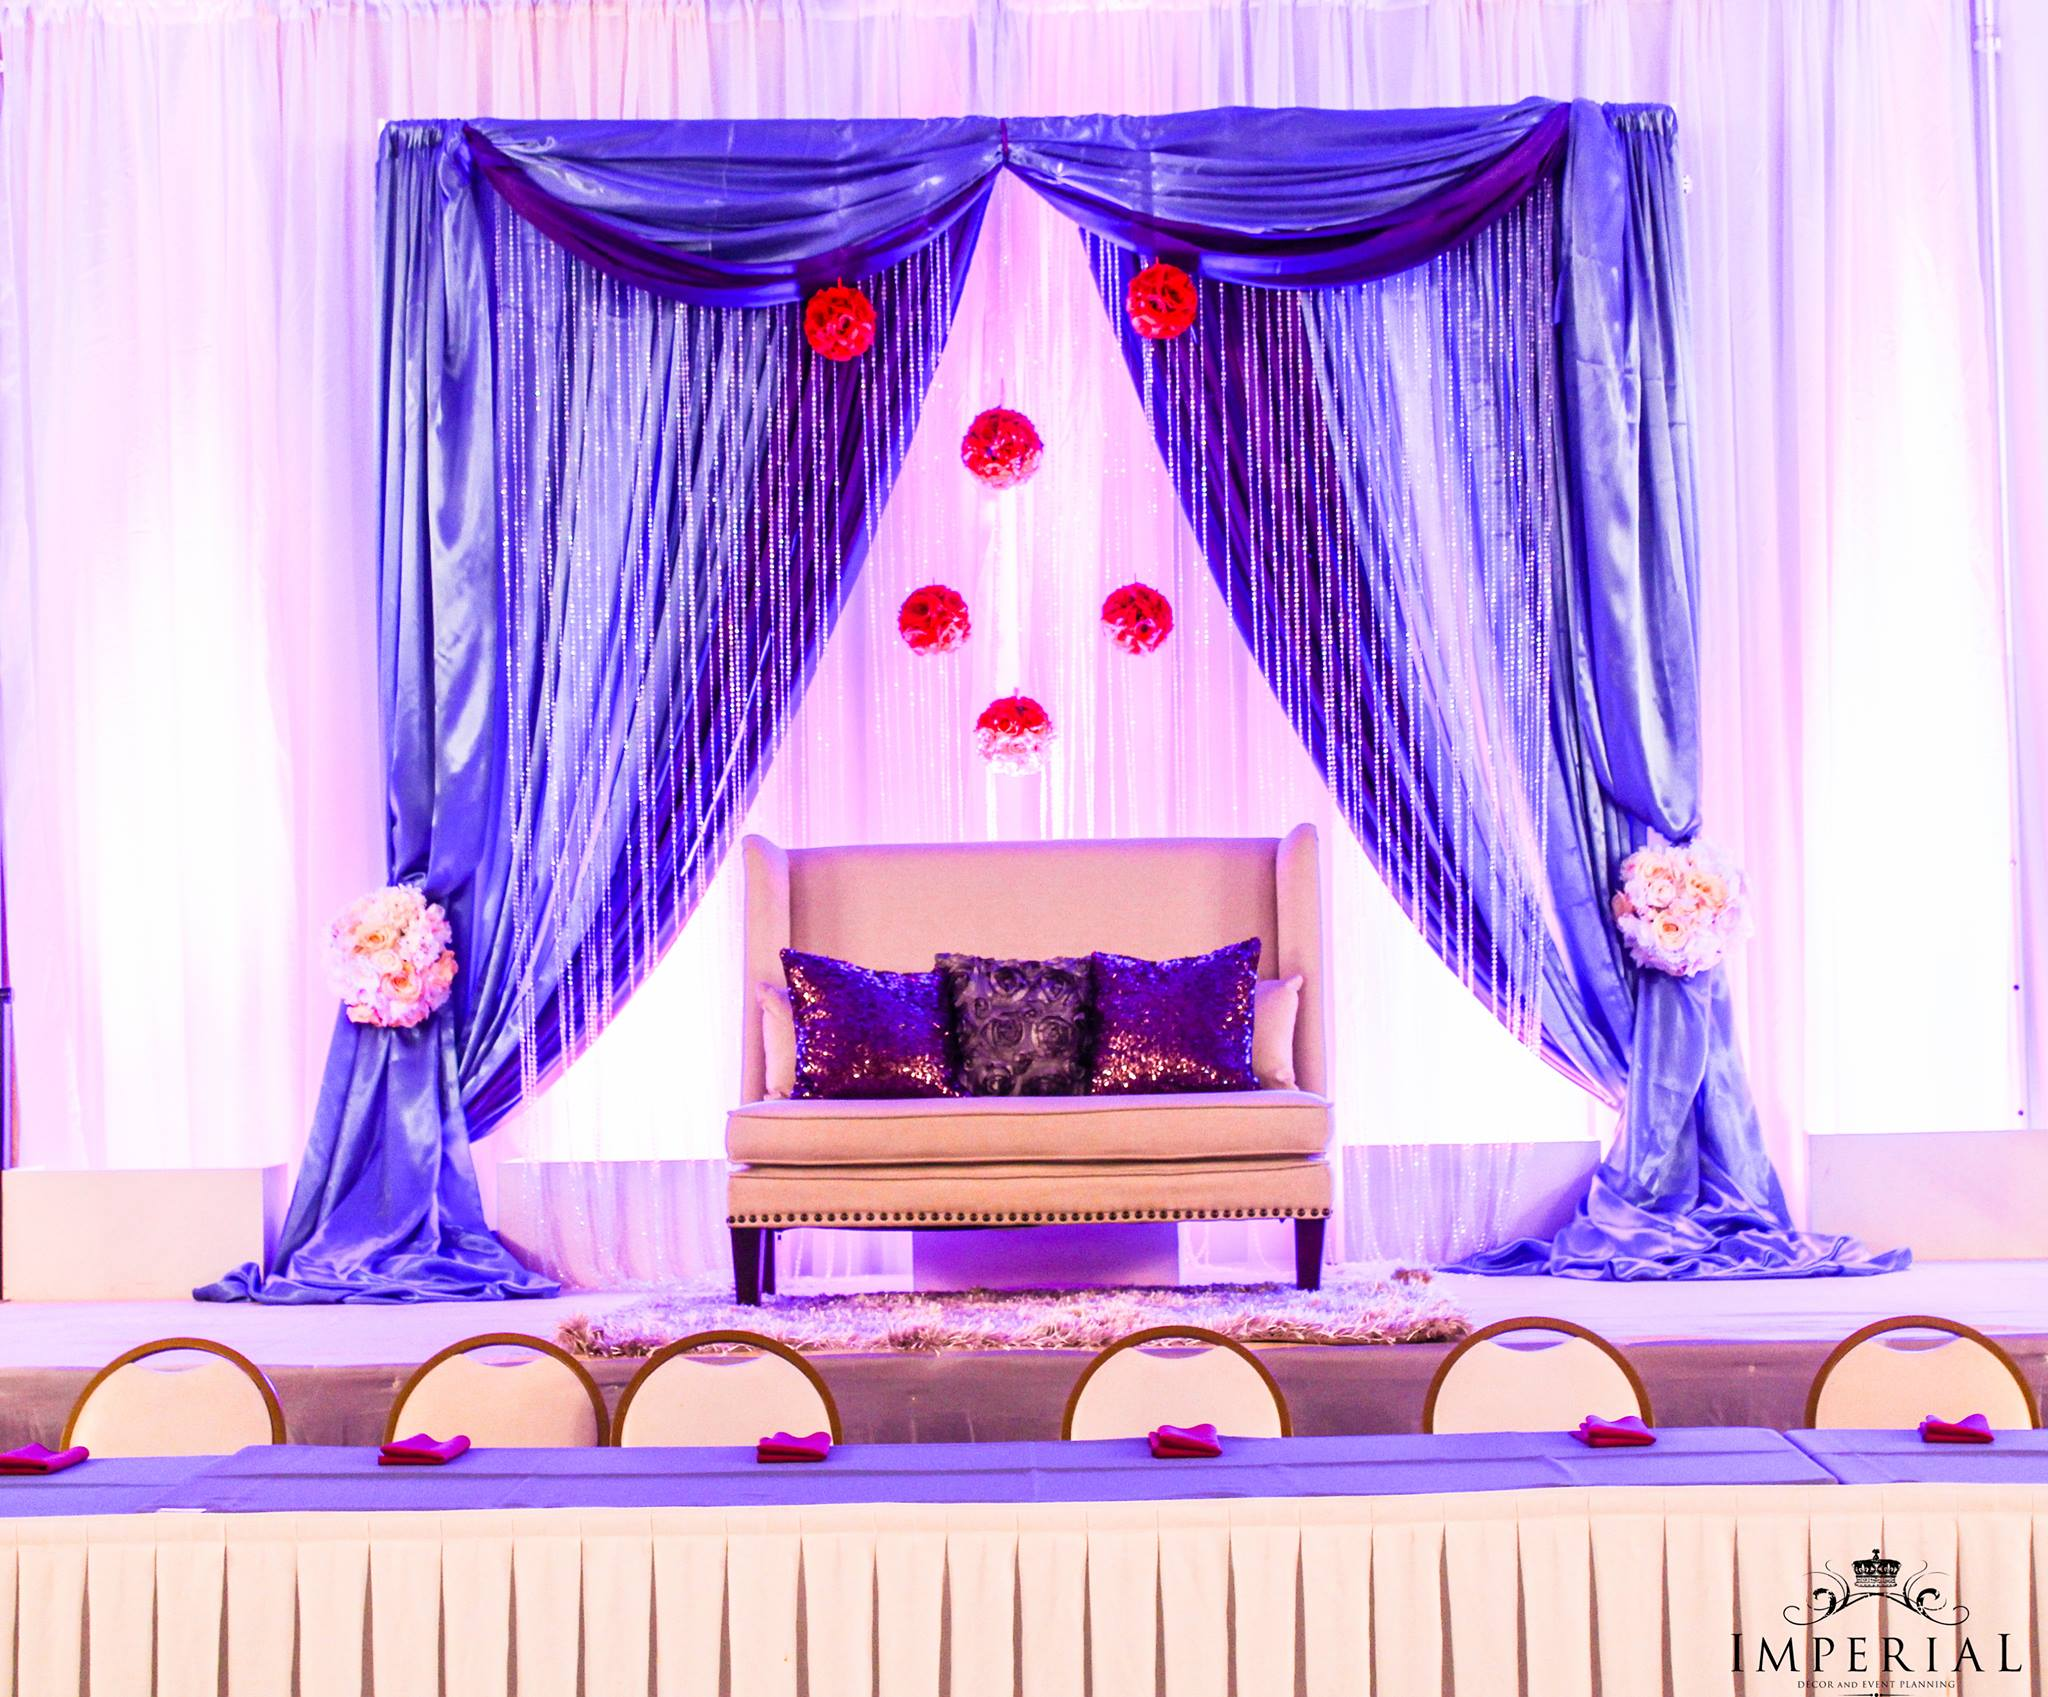 Imperial Decorations - Indian Wedding Stage Decorations.jpg